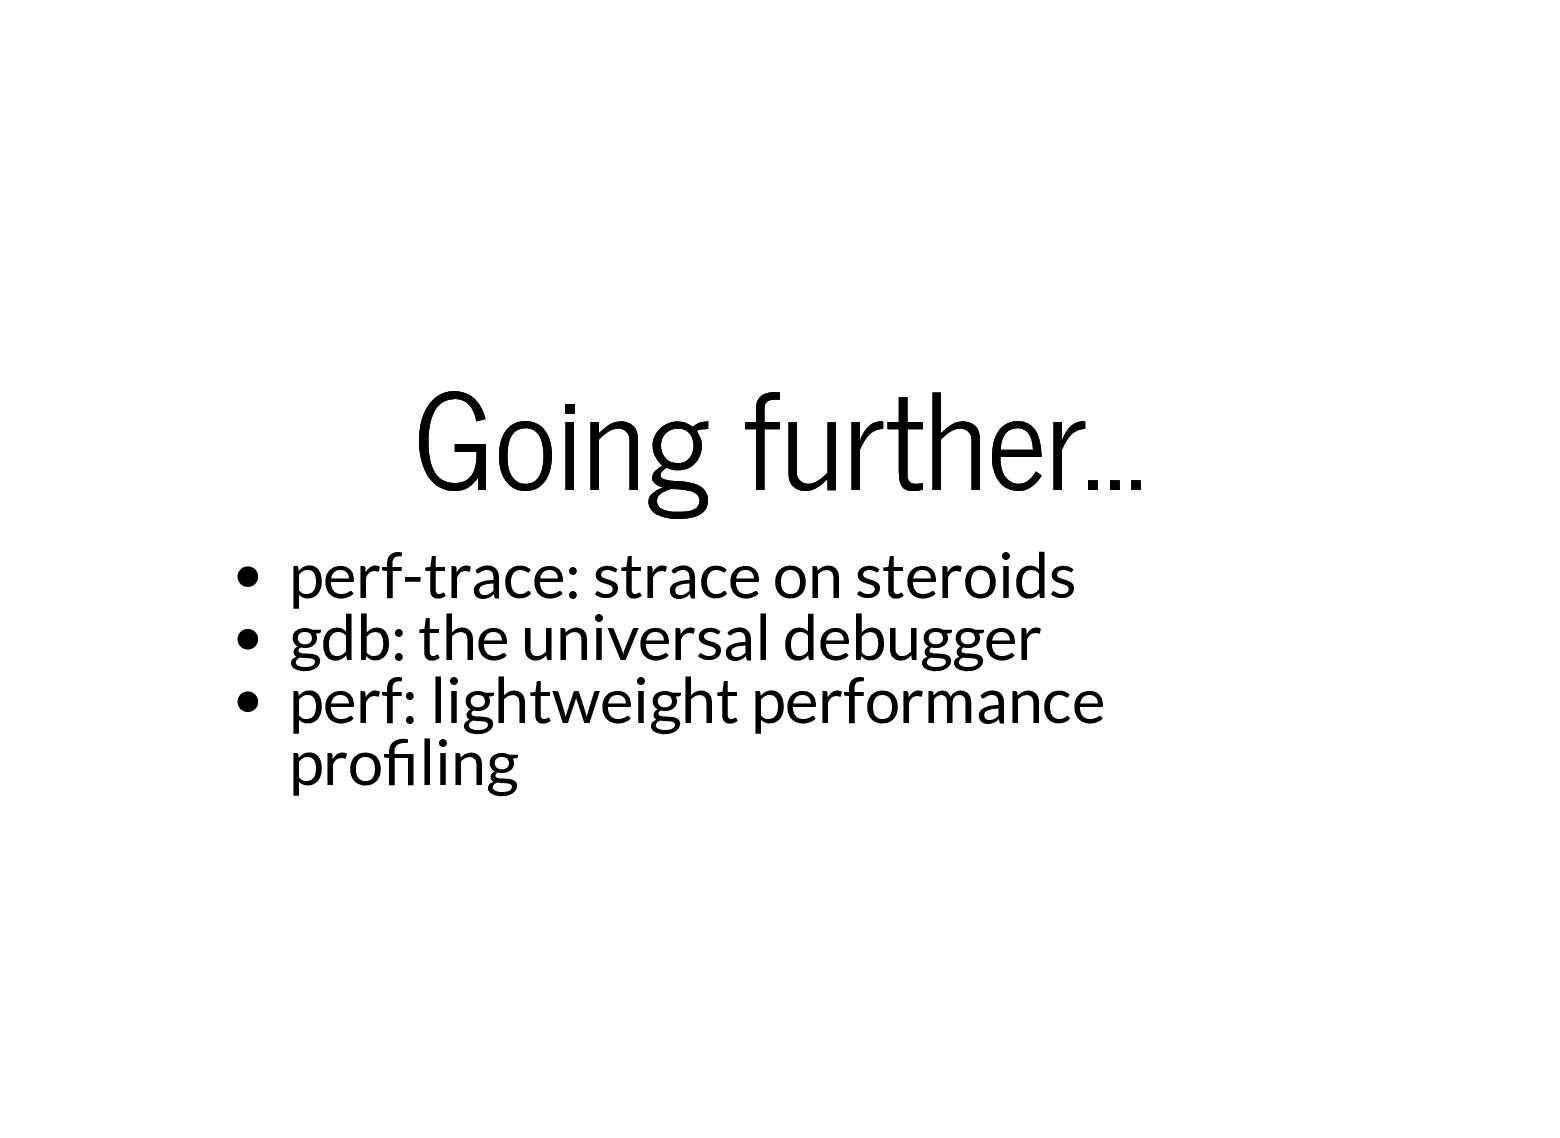 Going further... Going further... perf-trace: s...